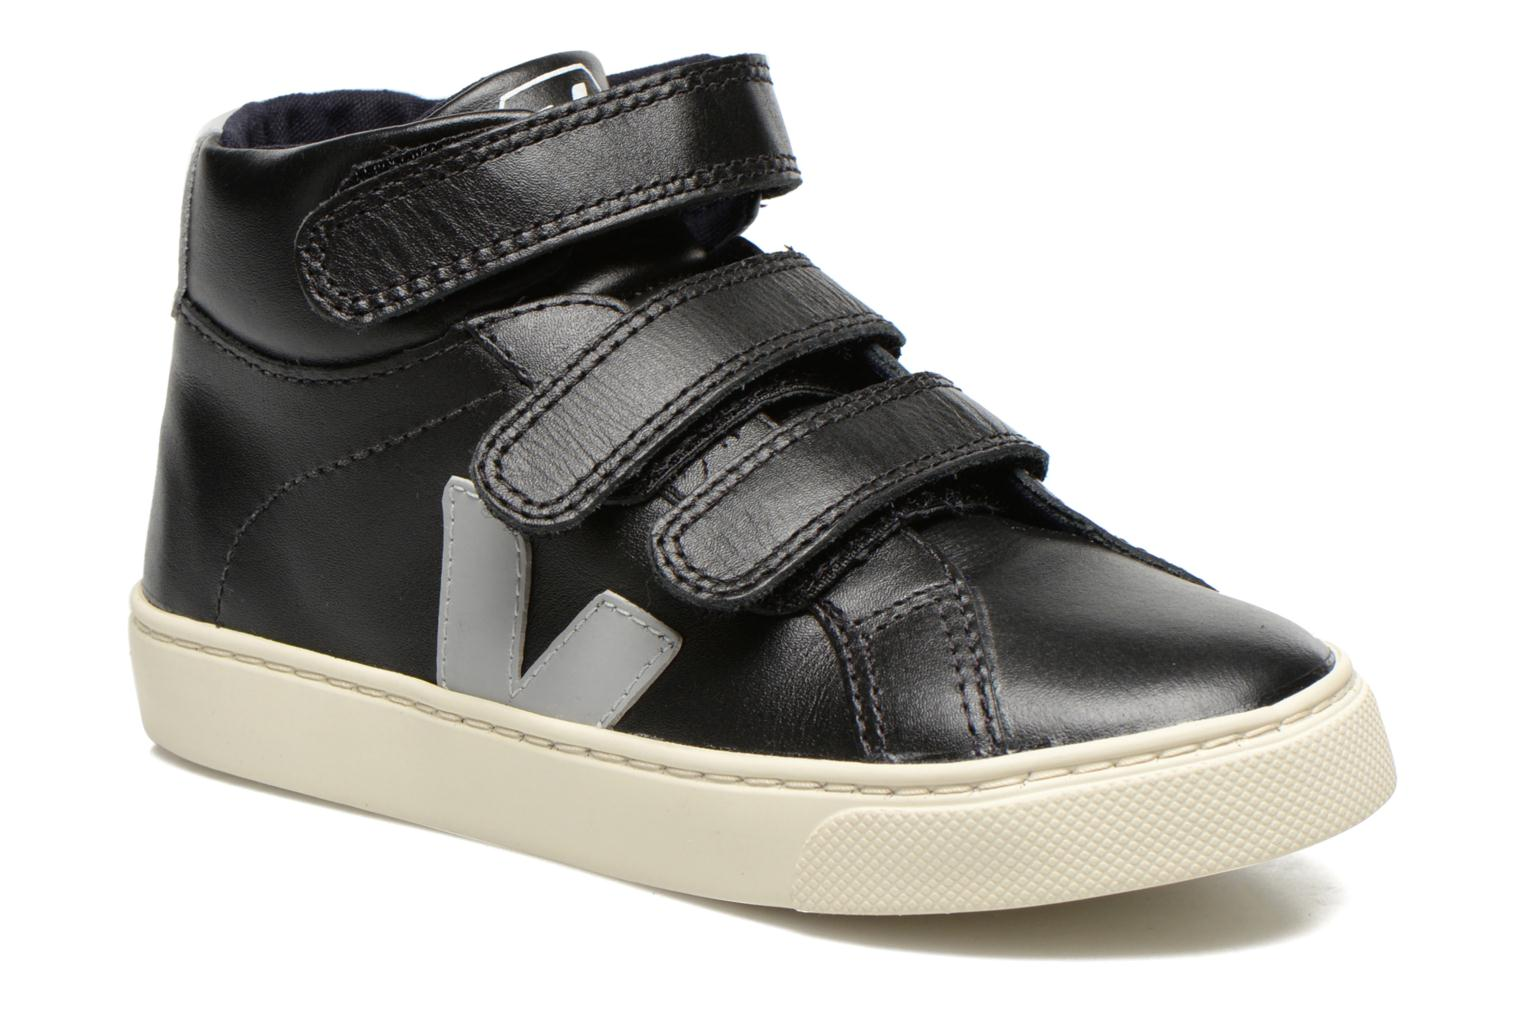 Baskets Veja ESPLAR MID SMALL VELCRO LEATHER Noir vue détail/paire